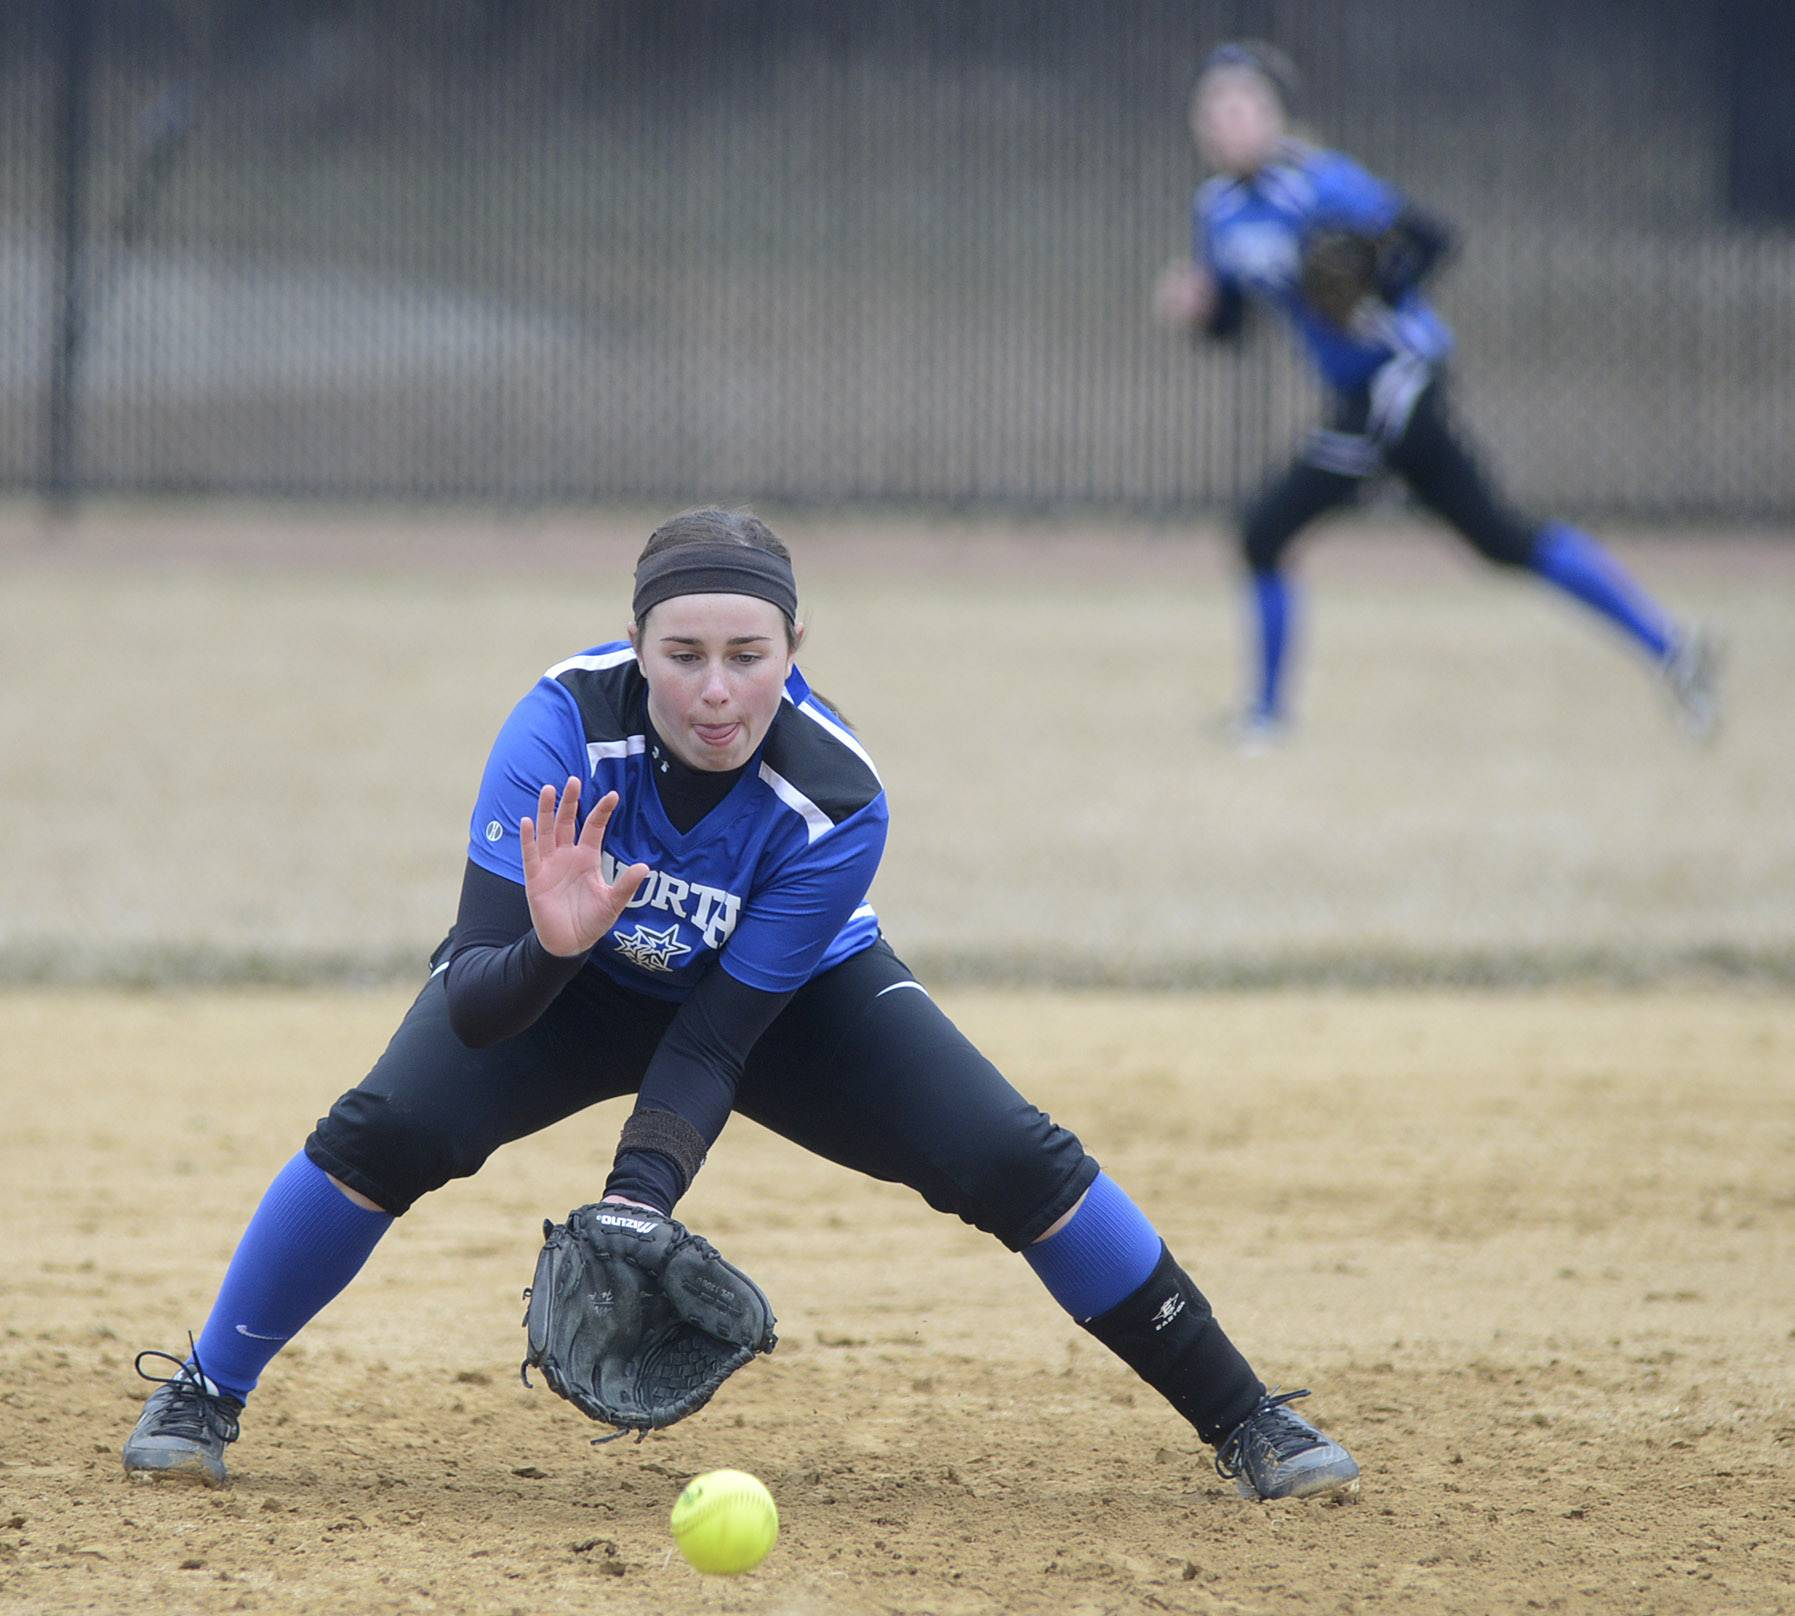 St. Charles North's Erin Nemetz fields a grounder against Schaumburg during the North Stars' 3-0 win Wednesday in St. Charles.